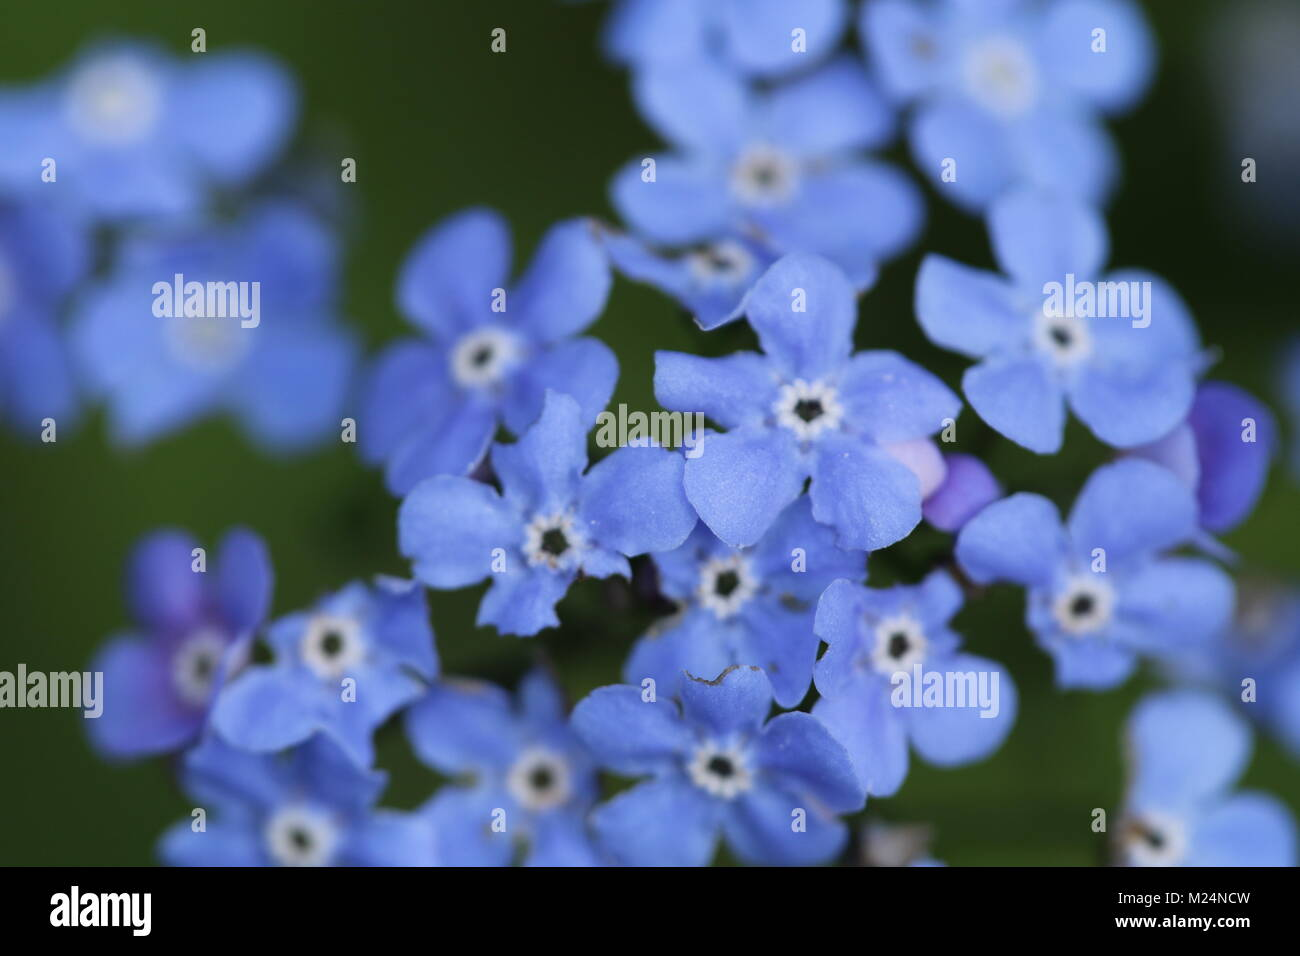 Forget Me Not Flowers Tiny Blue Flowers Stock Photo 173437625 Alamy